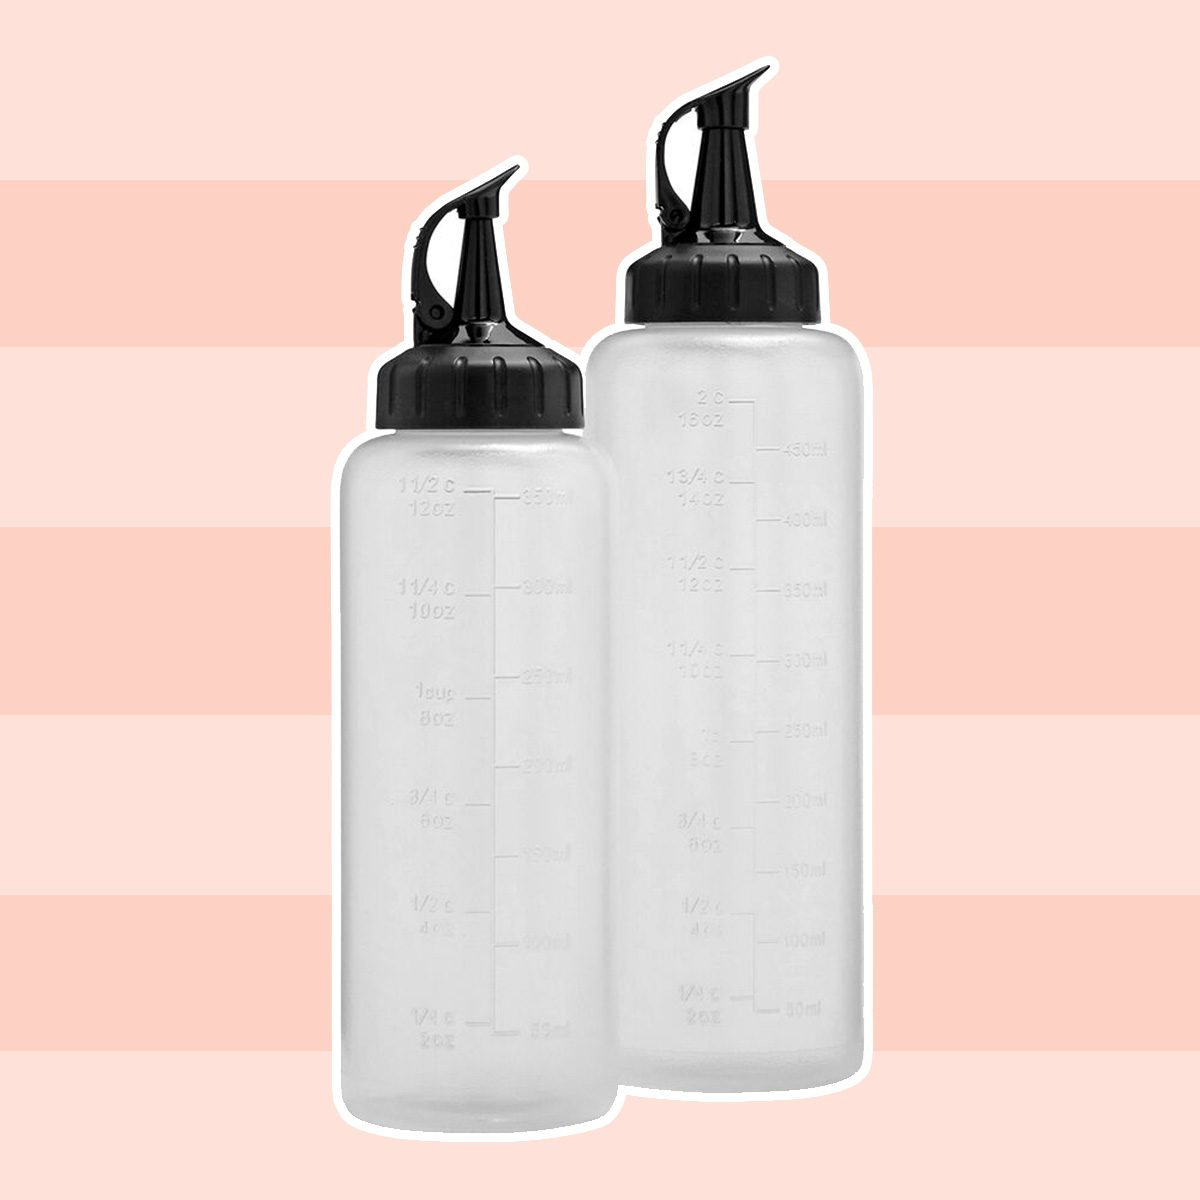 OXO GOOD GRIPS 2-PIECE CHEF'S SQUEEZE BOTTLE SET